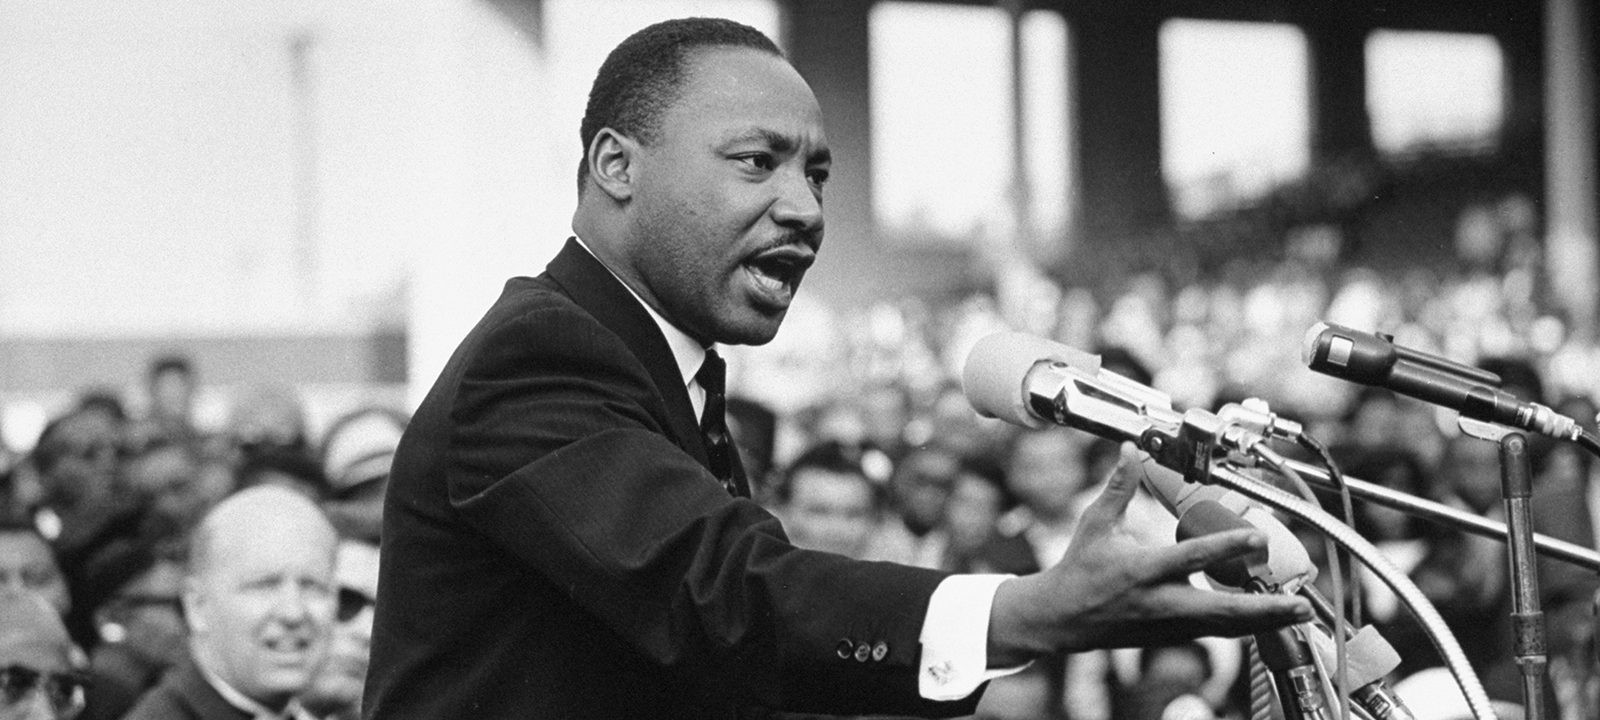 Remembering MLK Jr on 50th Anniversary of His Death